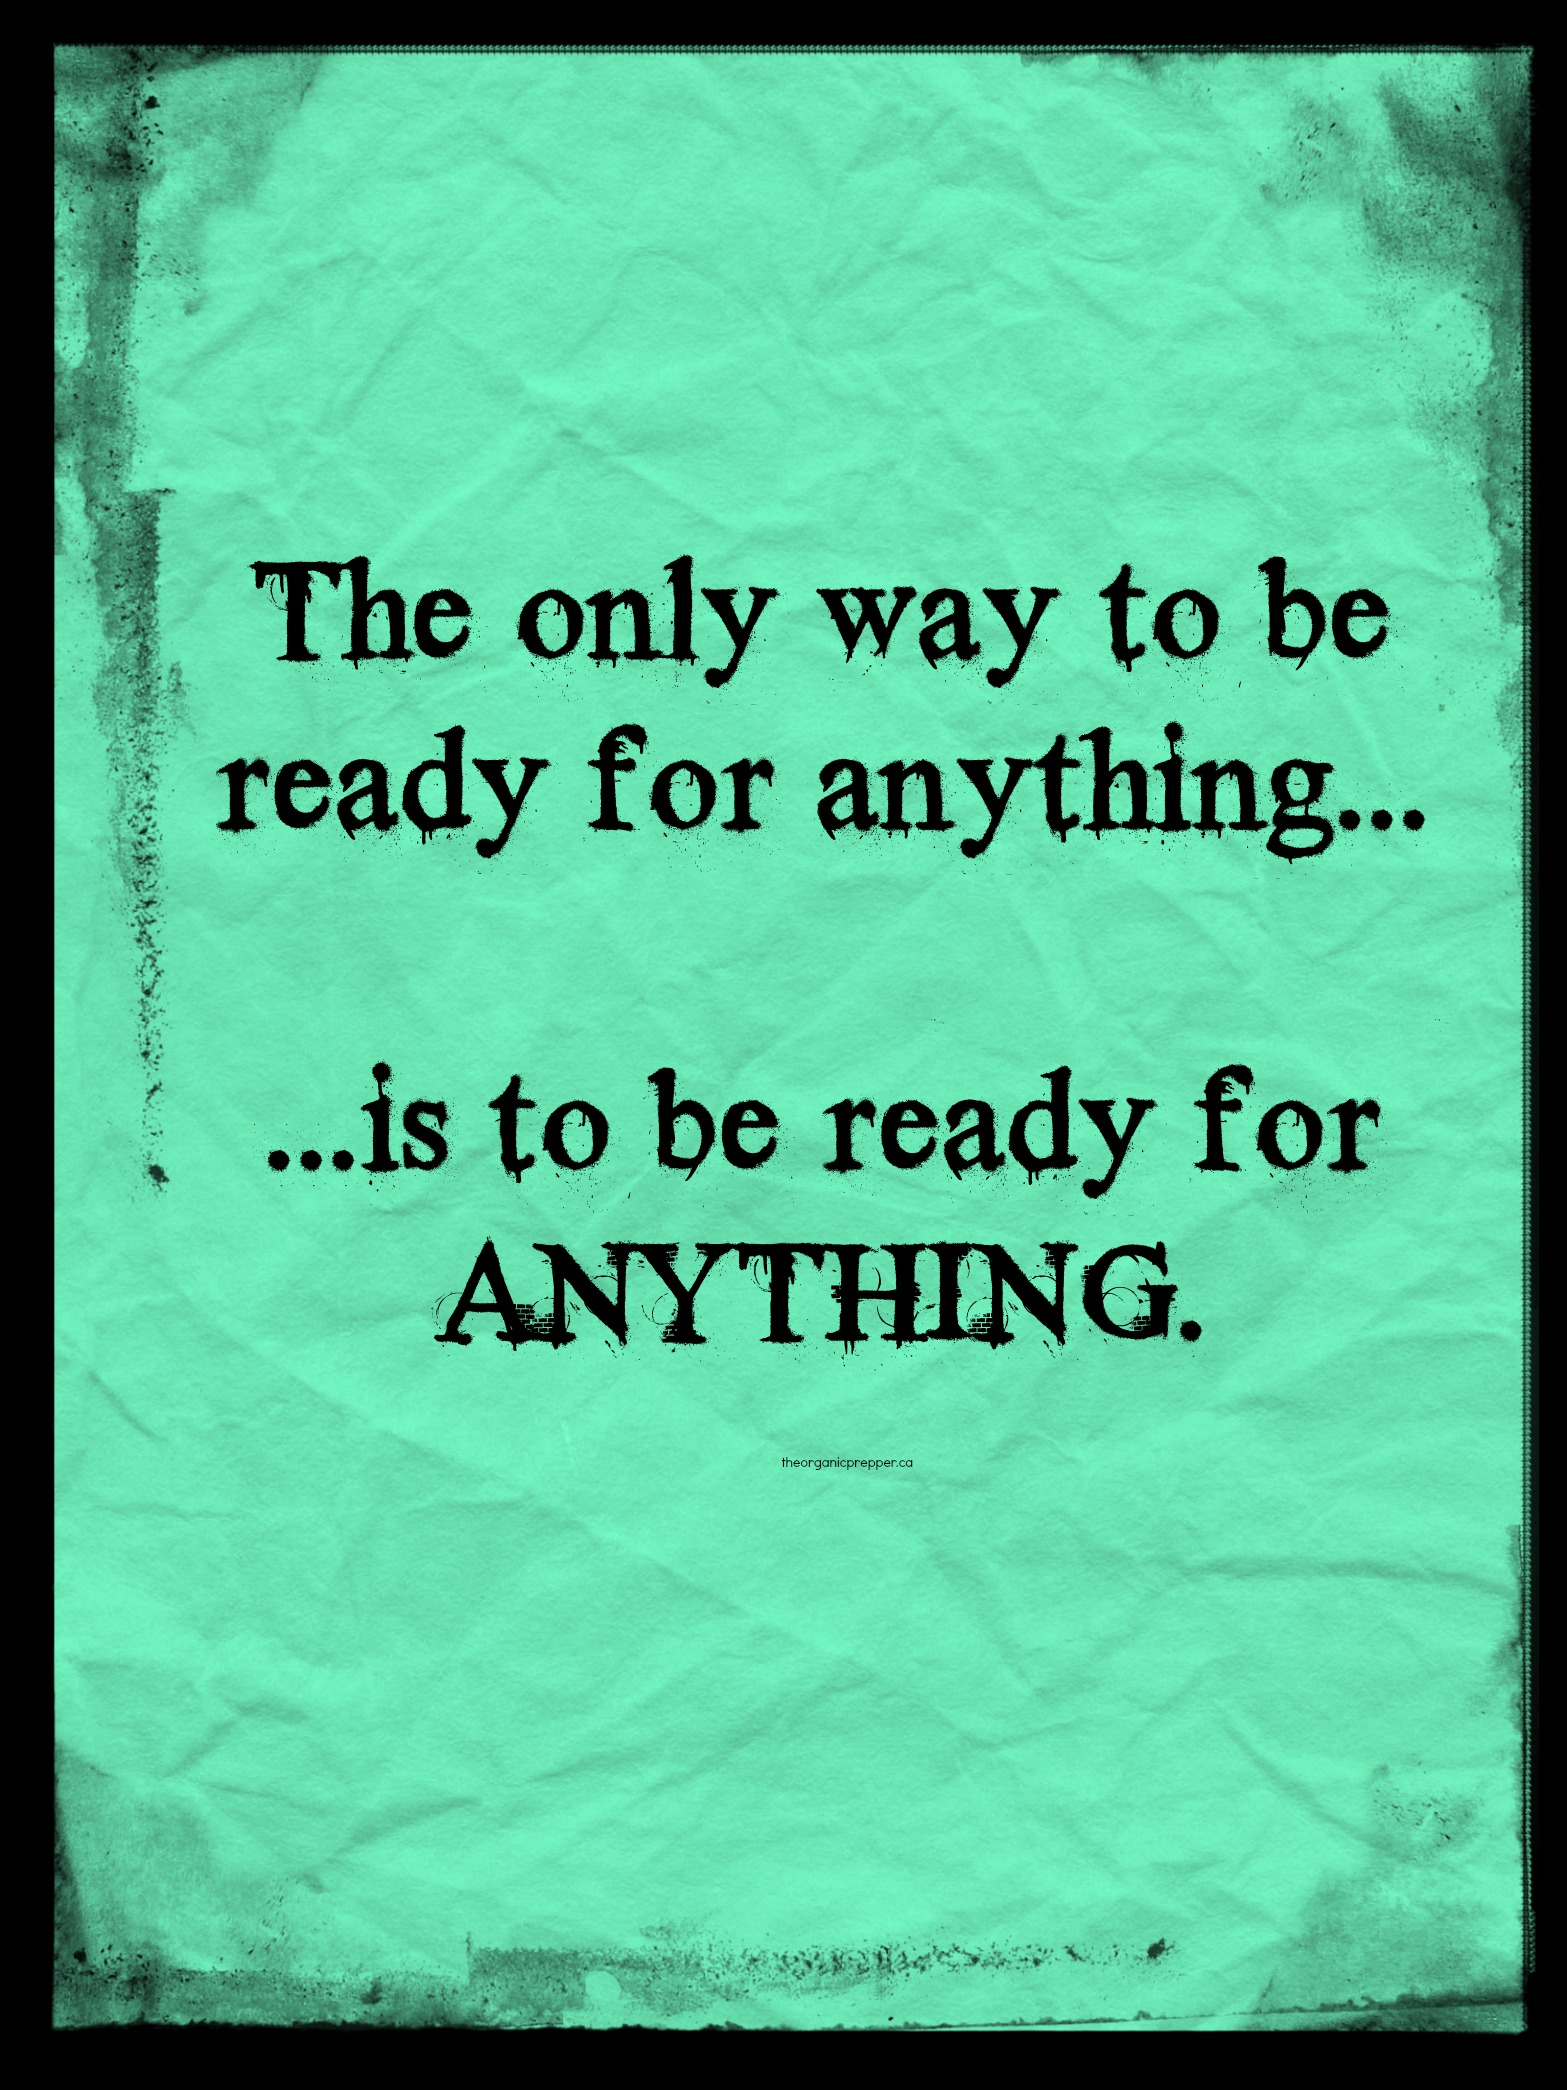 Kinder Garden: Prepping: The Only Way To Be Ready For Anything Is To Be